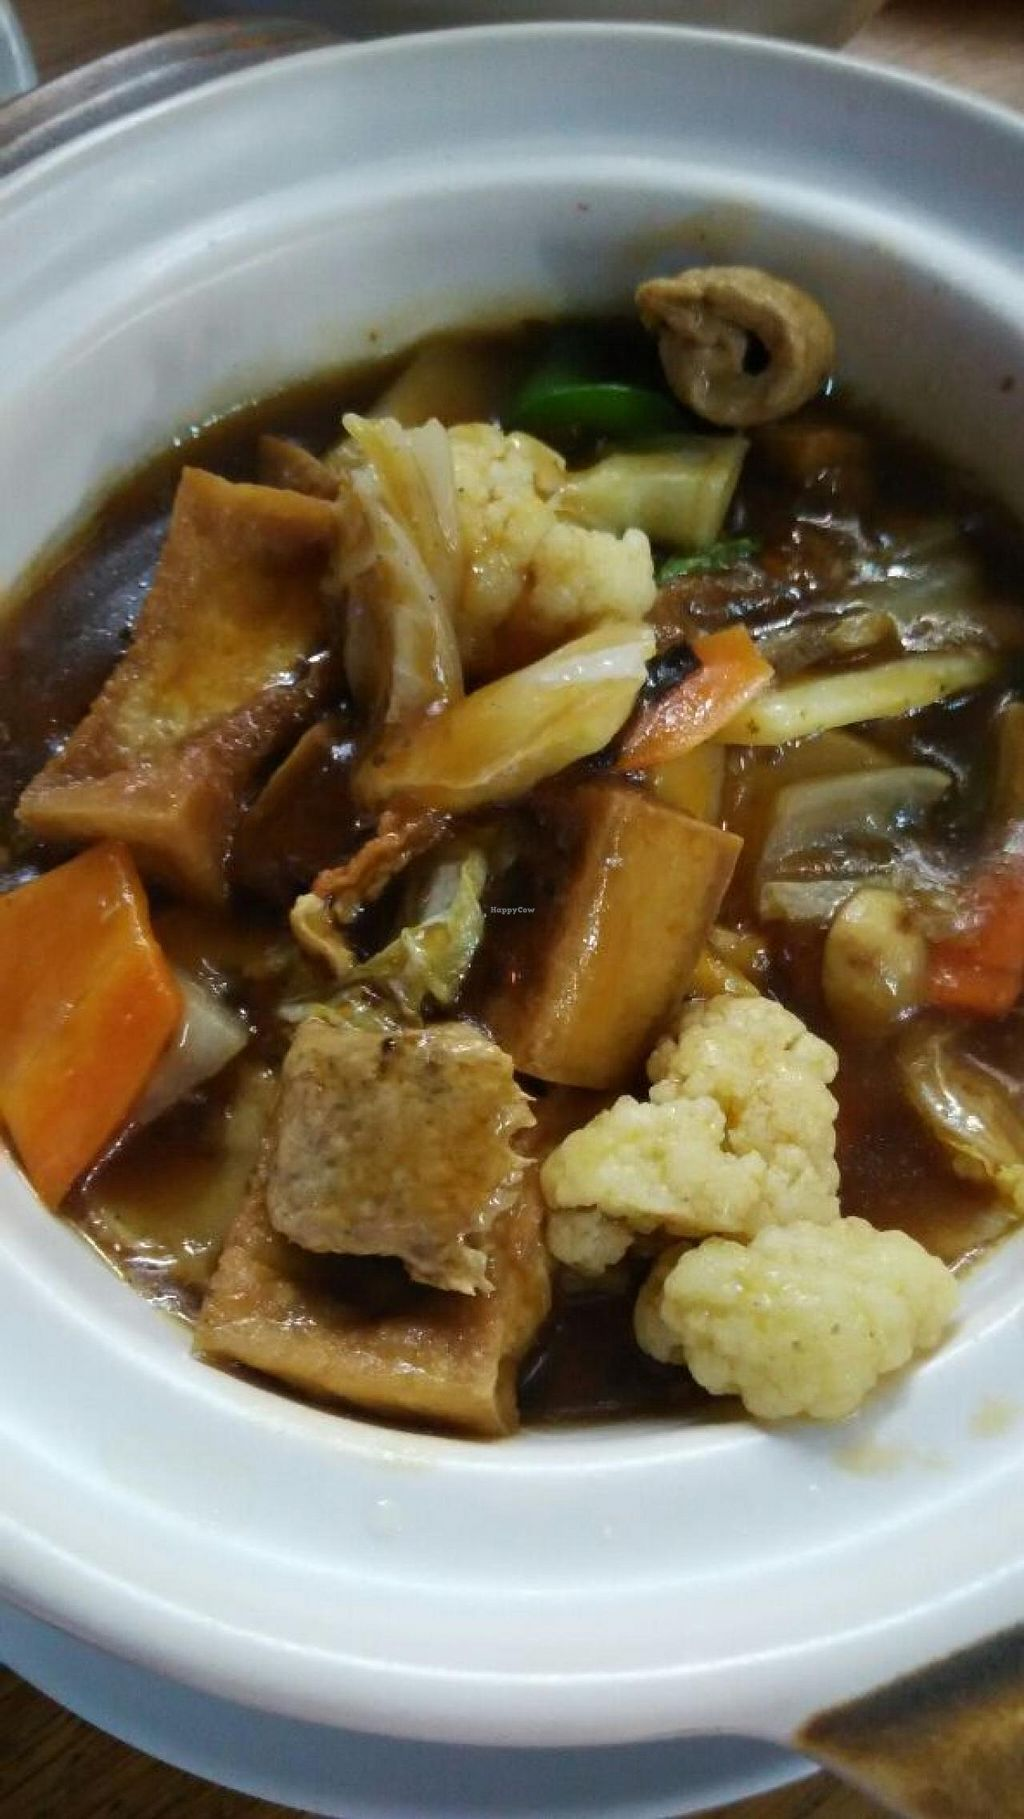 "Photo of Zi Zai Vegetarian - Tampines Ave  by <a href=""/members/profile/JimmySeah"">JimmySeah</a> <br/>claypot bean curd <br/> July 12, 2015  - <a href='/contact/abuse/image/19389/109049'>Report</a>"